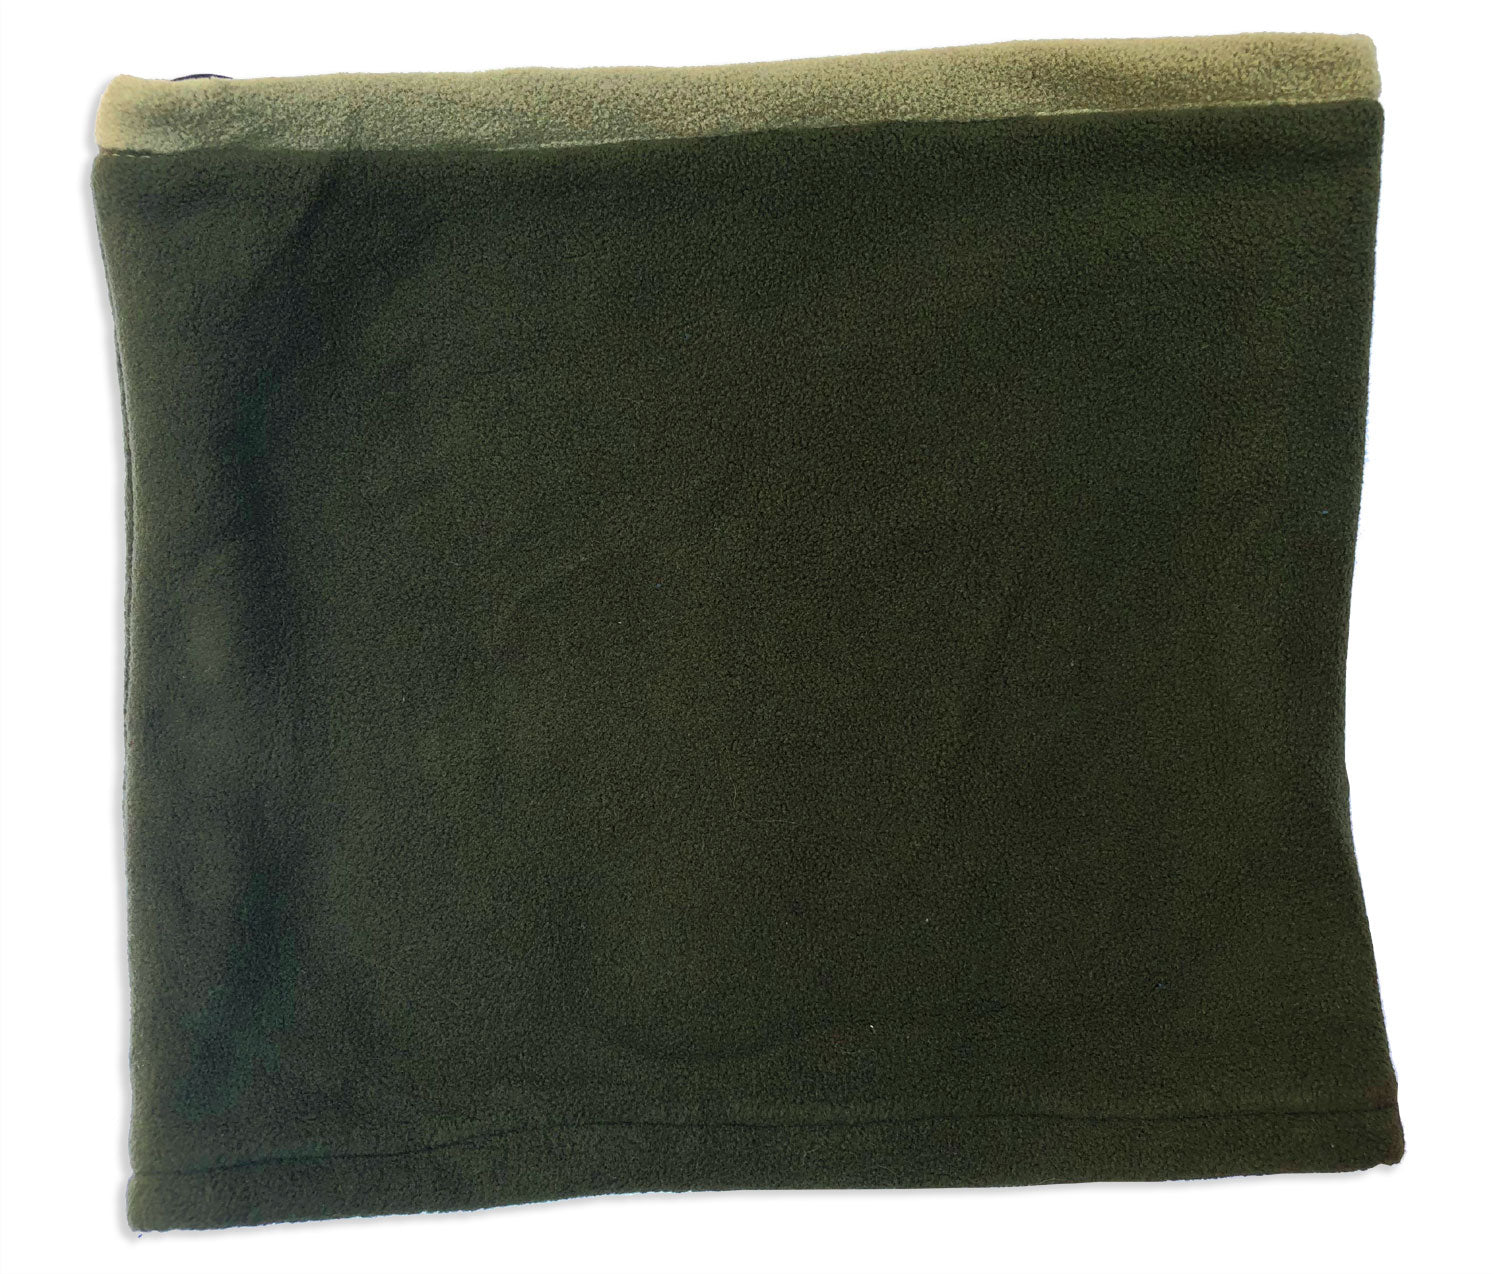 Green Gelert Micro Thermal Fleece Neck Warmer